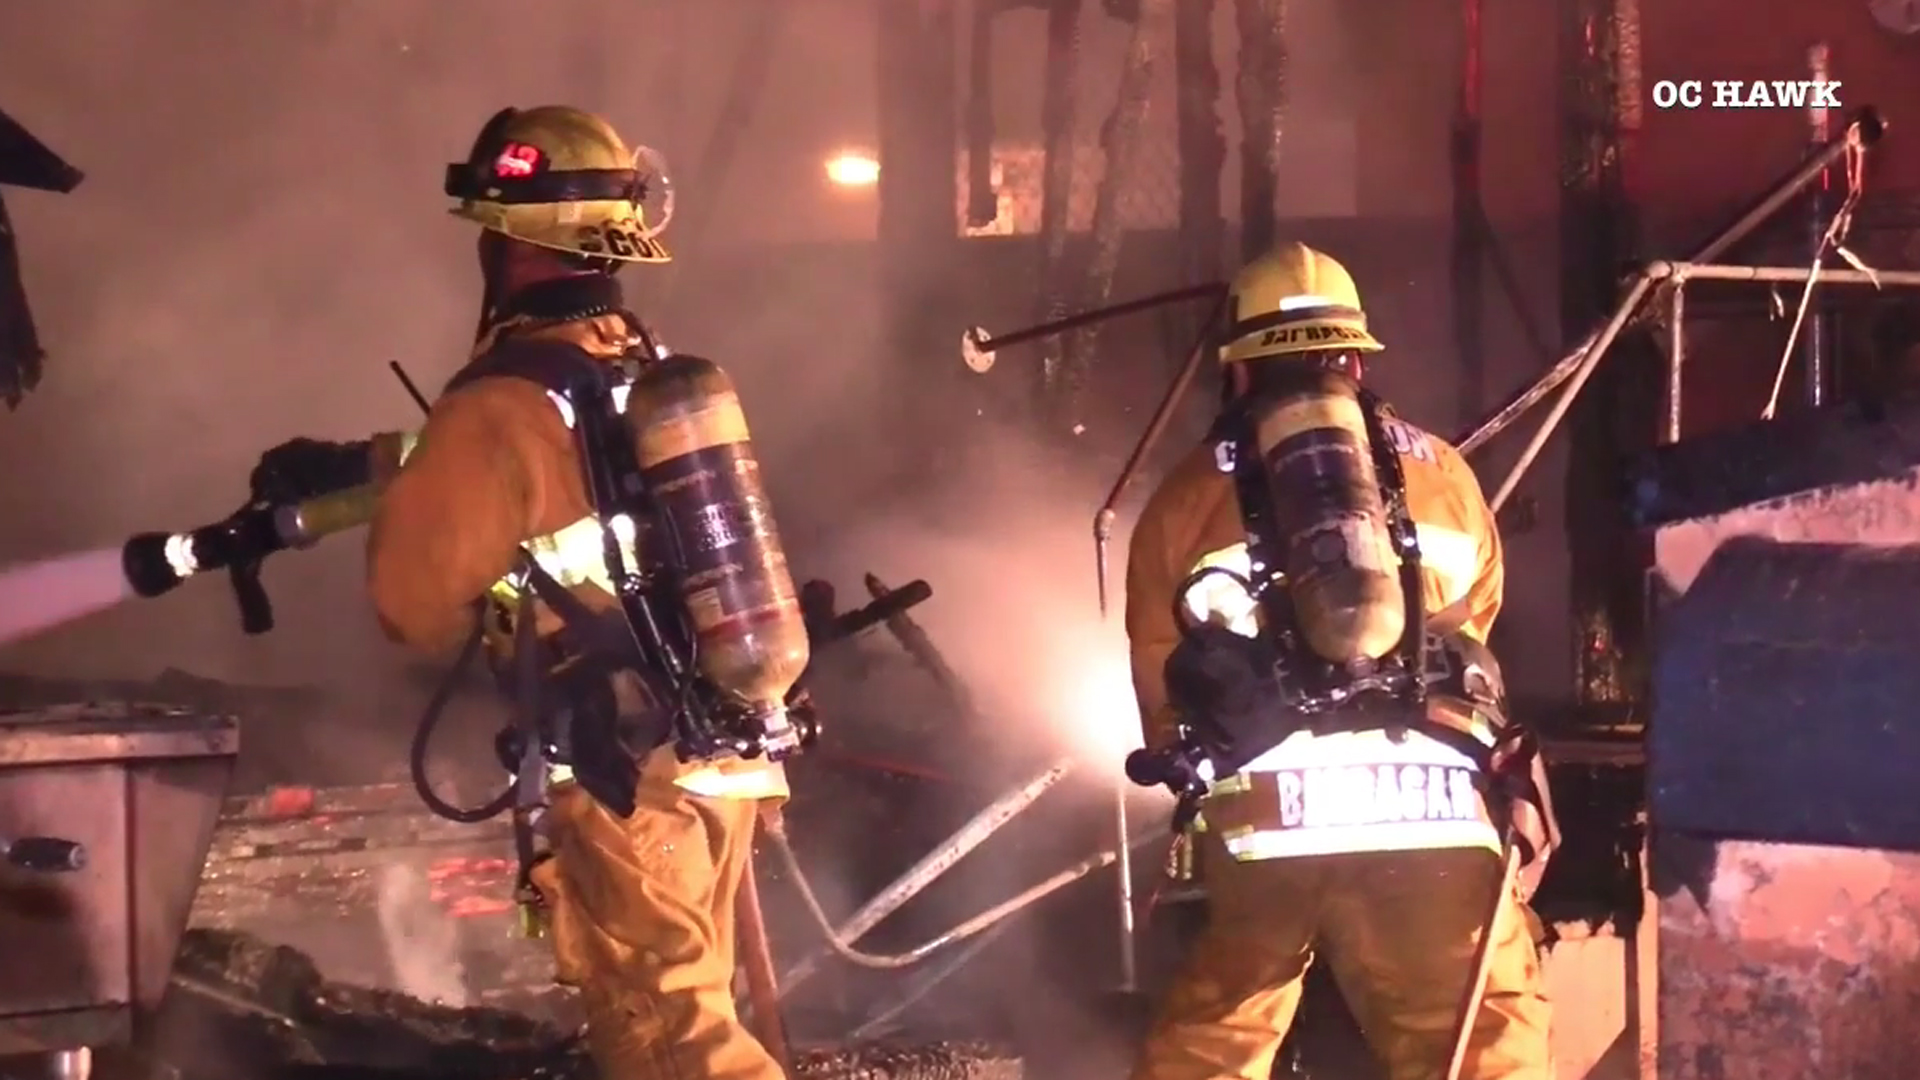 Compton firefighters work to extinguish flames of a home on fire on April 2, 2019. (Credit: OC Hawk)